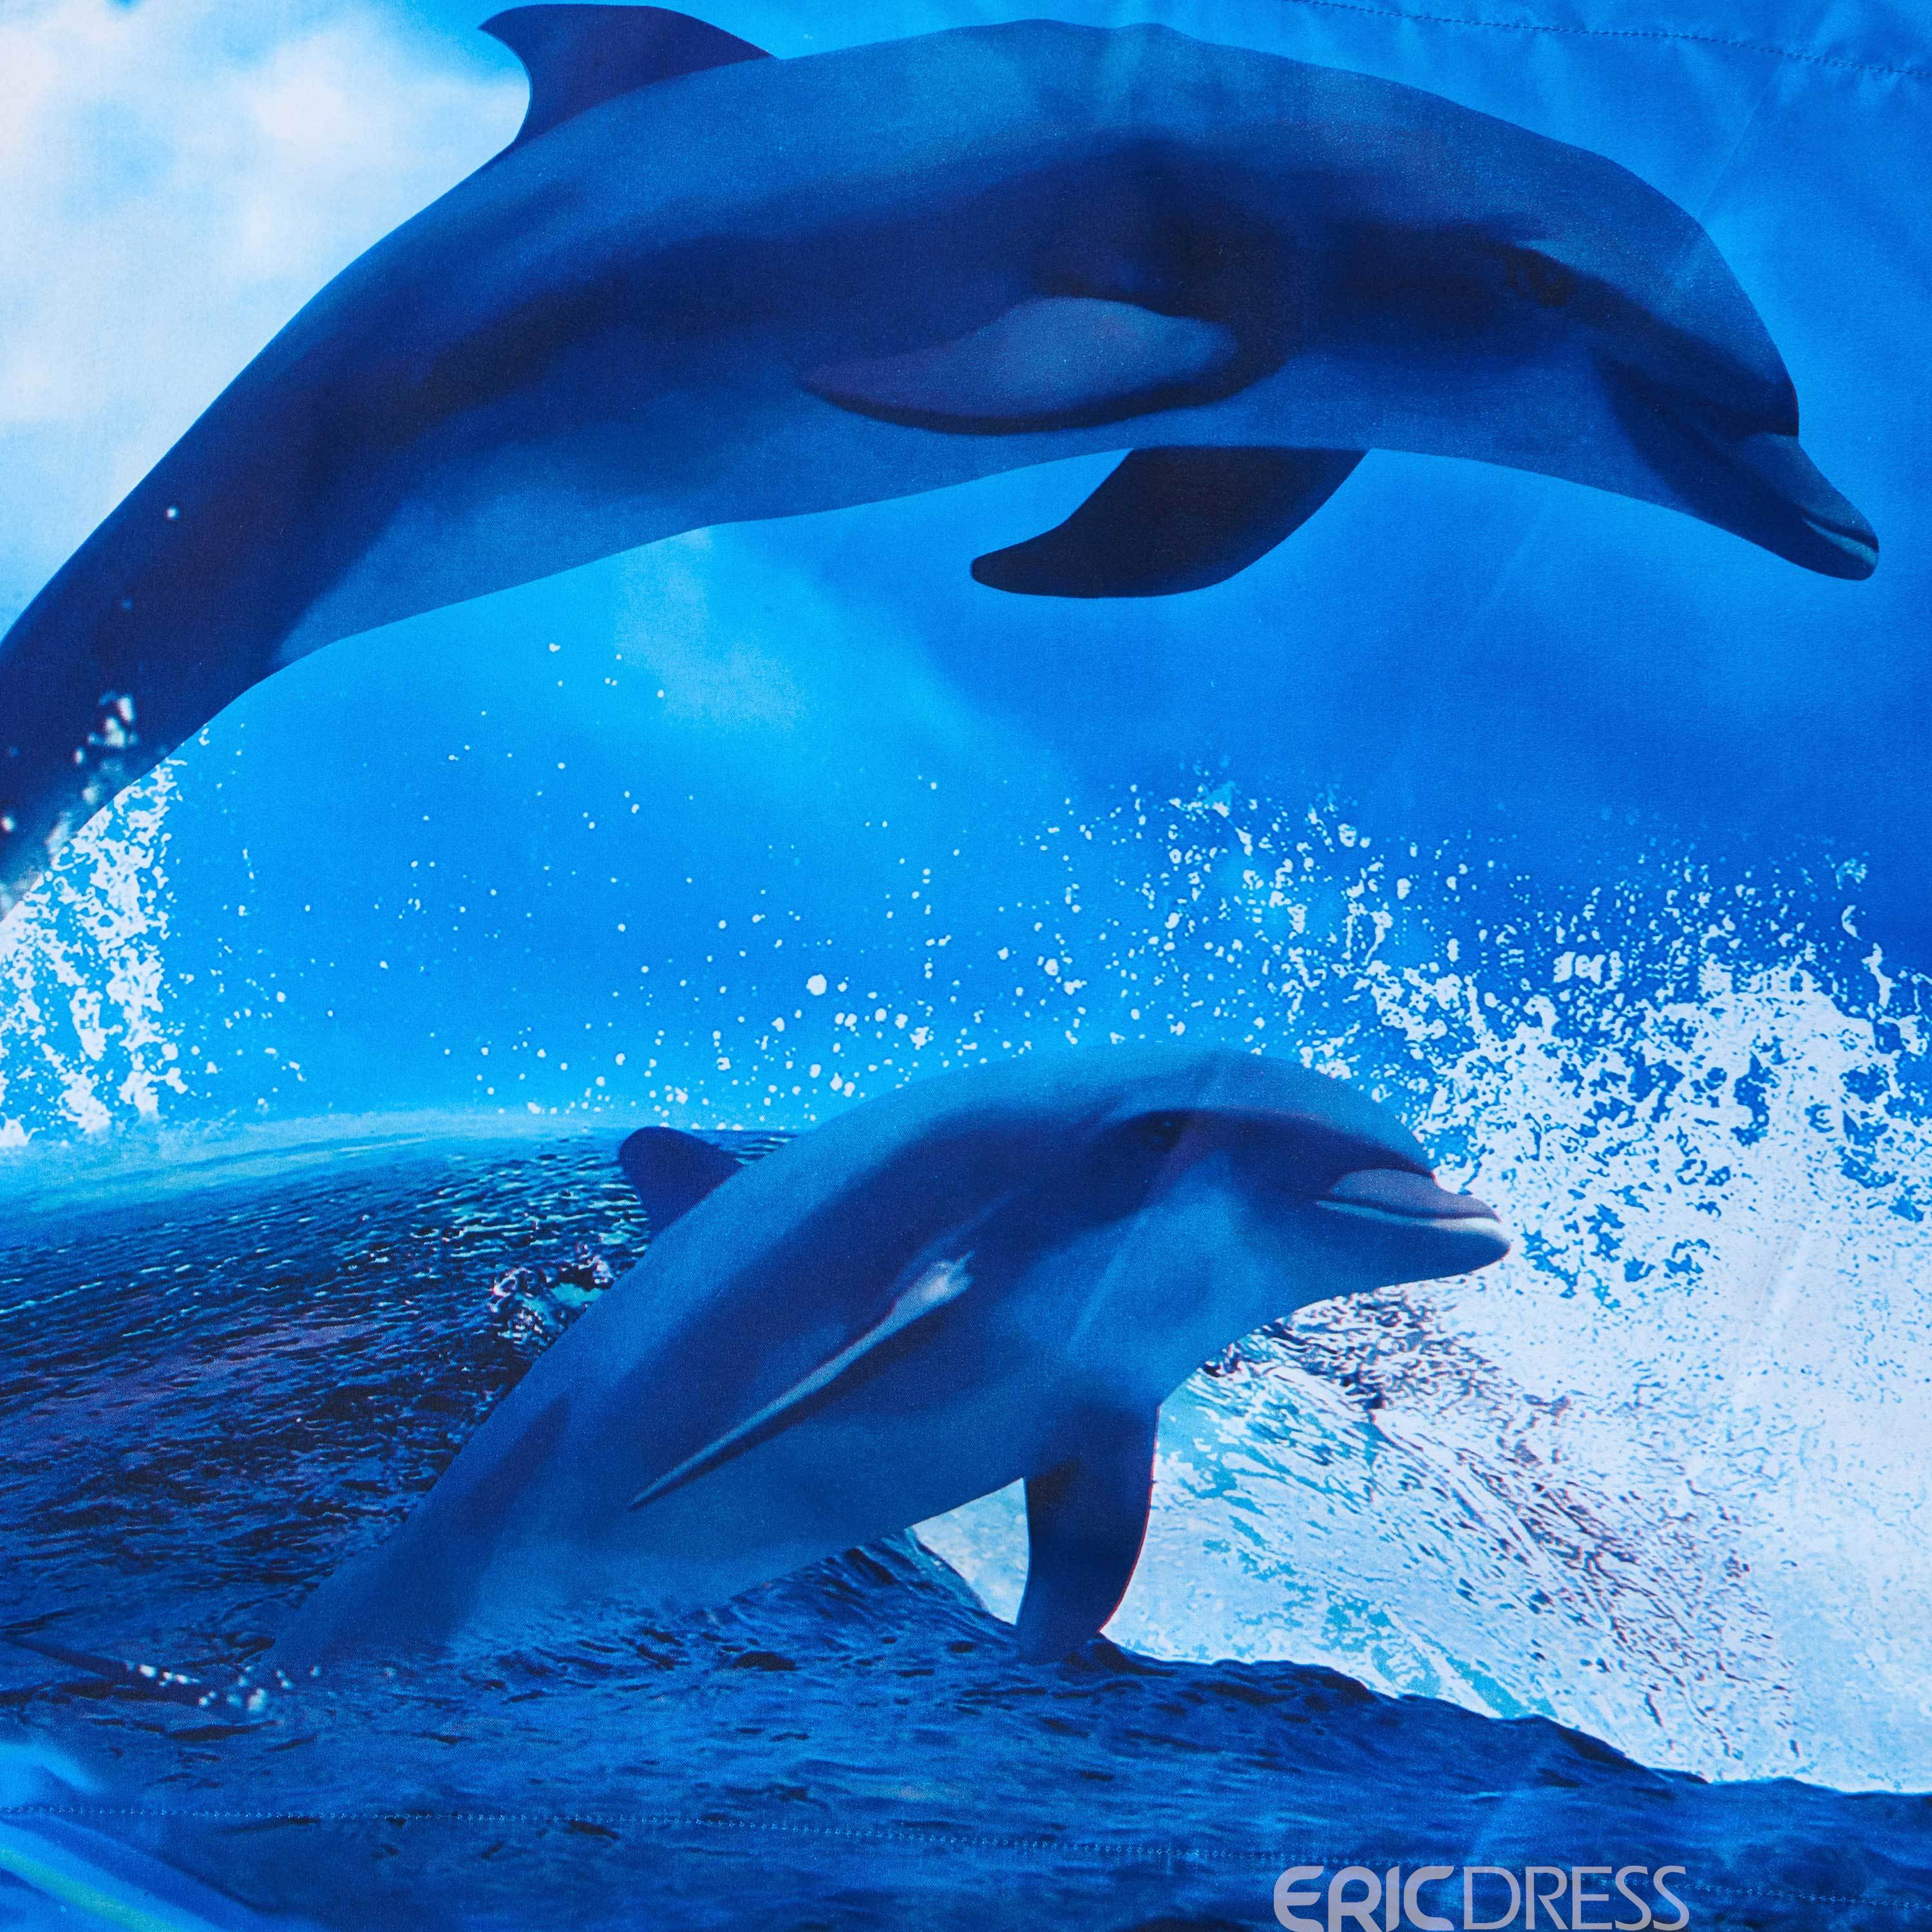 Friendly Dolphins Jumping out of Blue Ocean Print Polyester 3D Bedding Sets